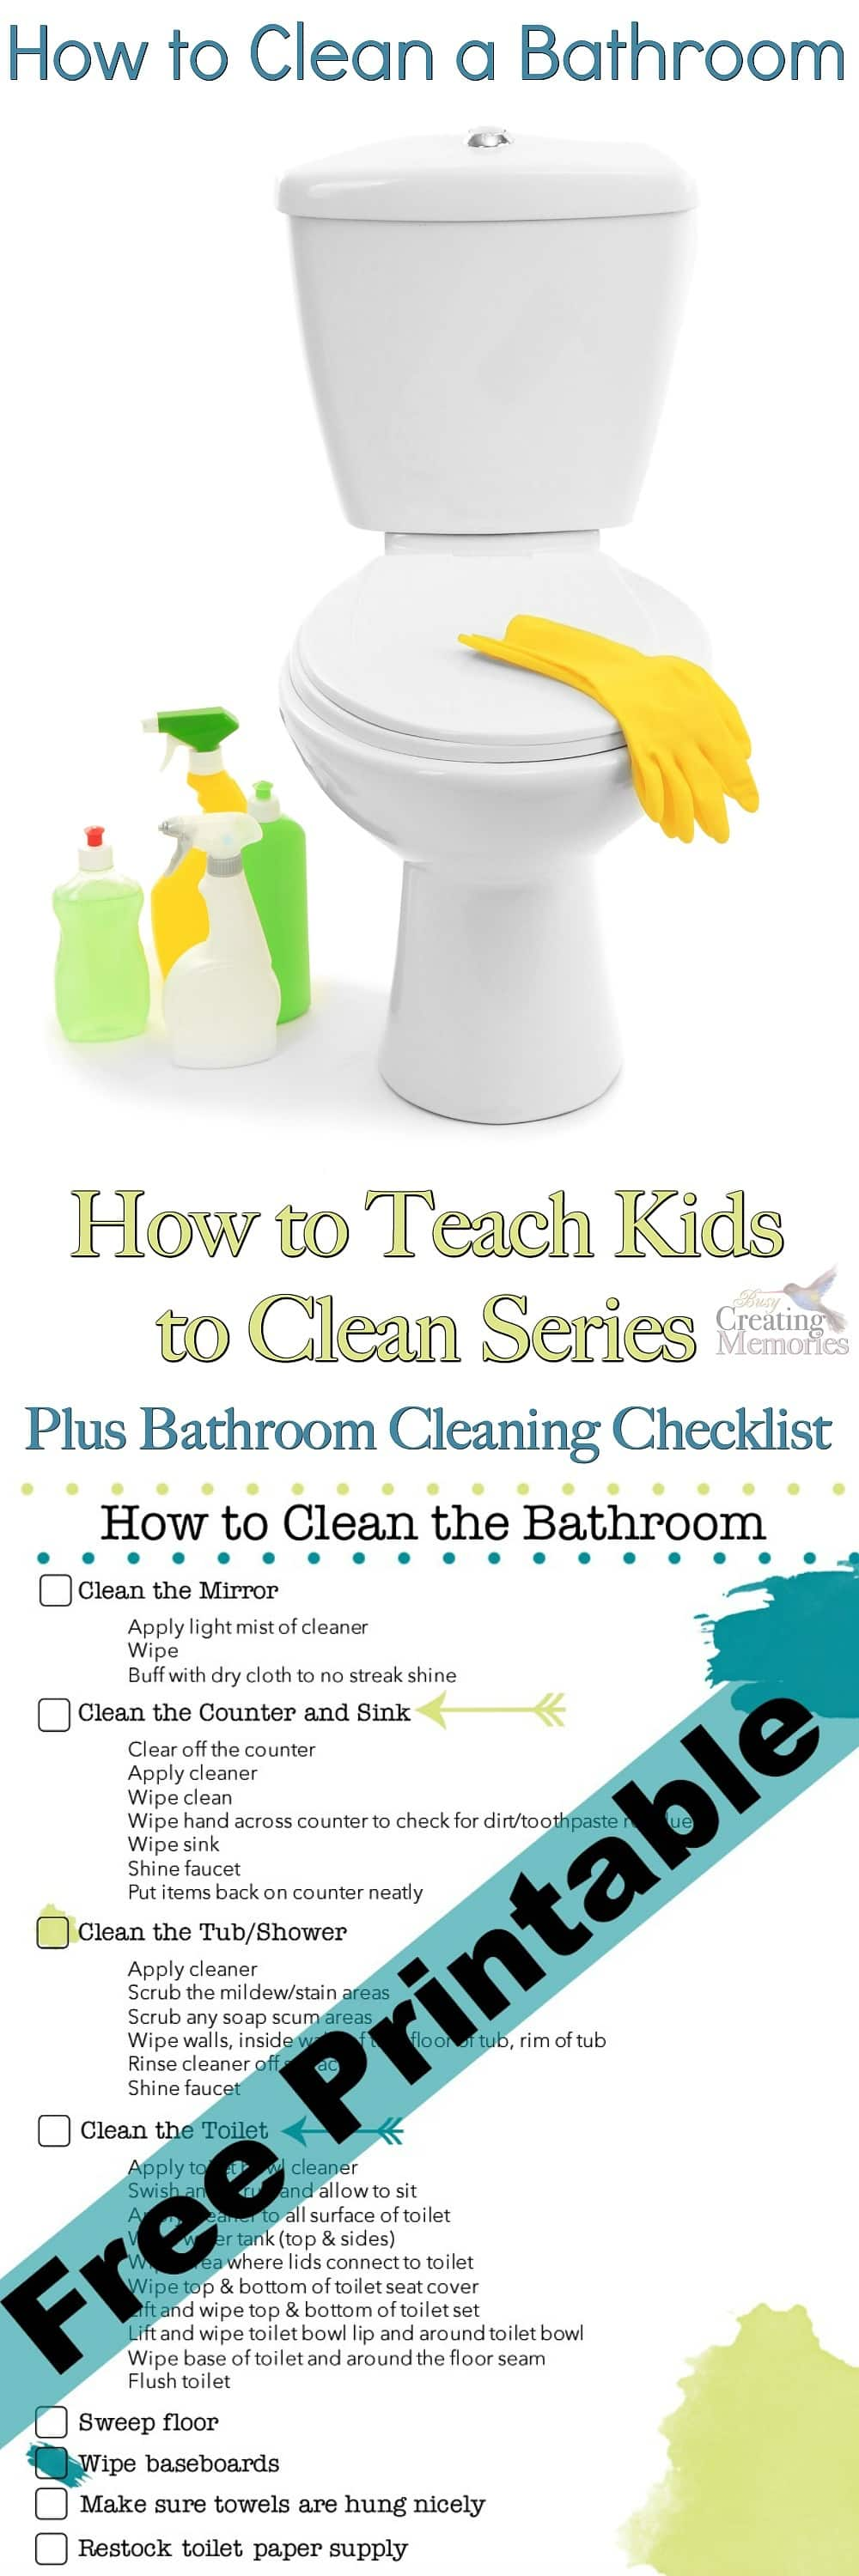 How To Clean A Bathroom Bathroom Cleaning Checklist Printable - What to use to clean bathroom